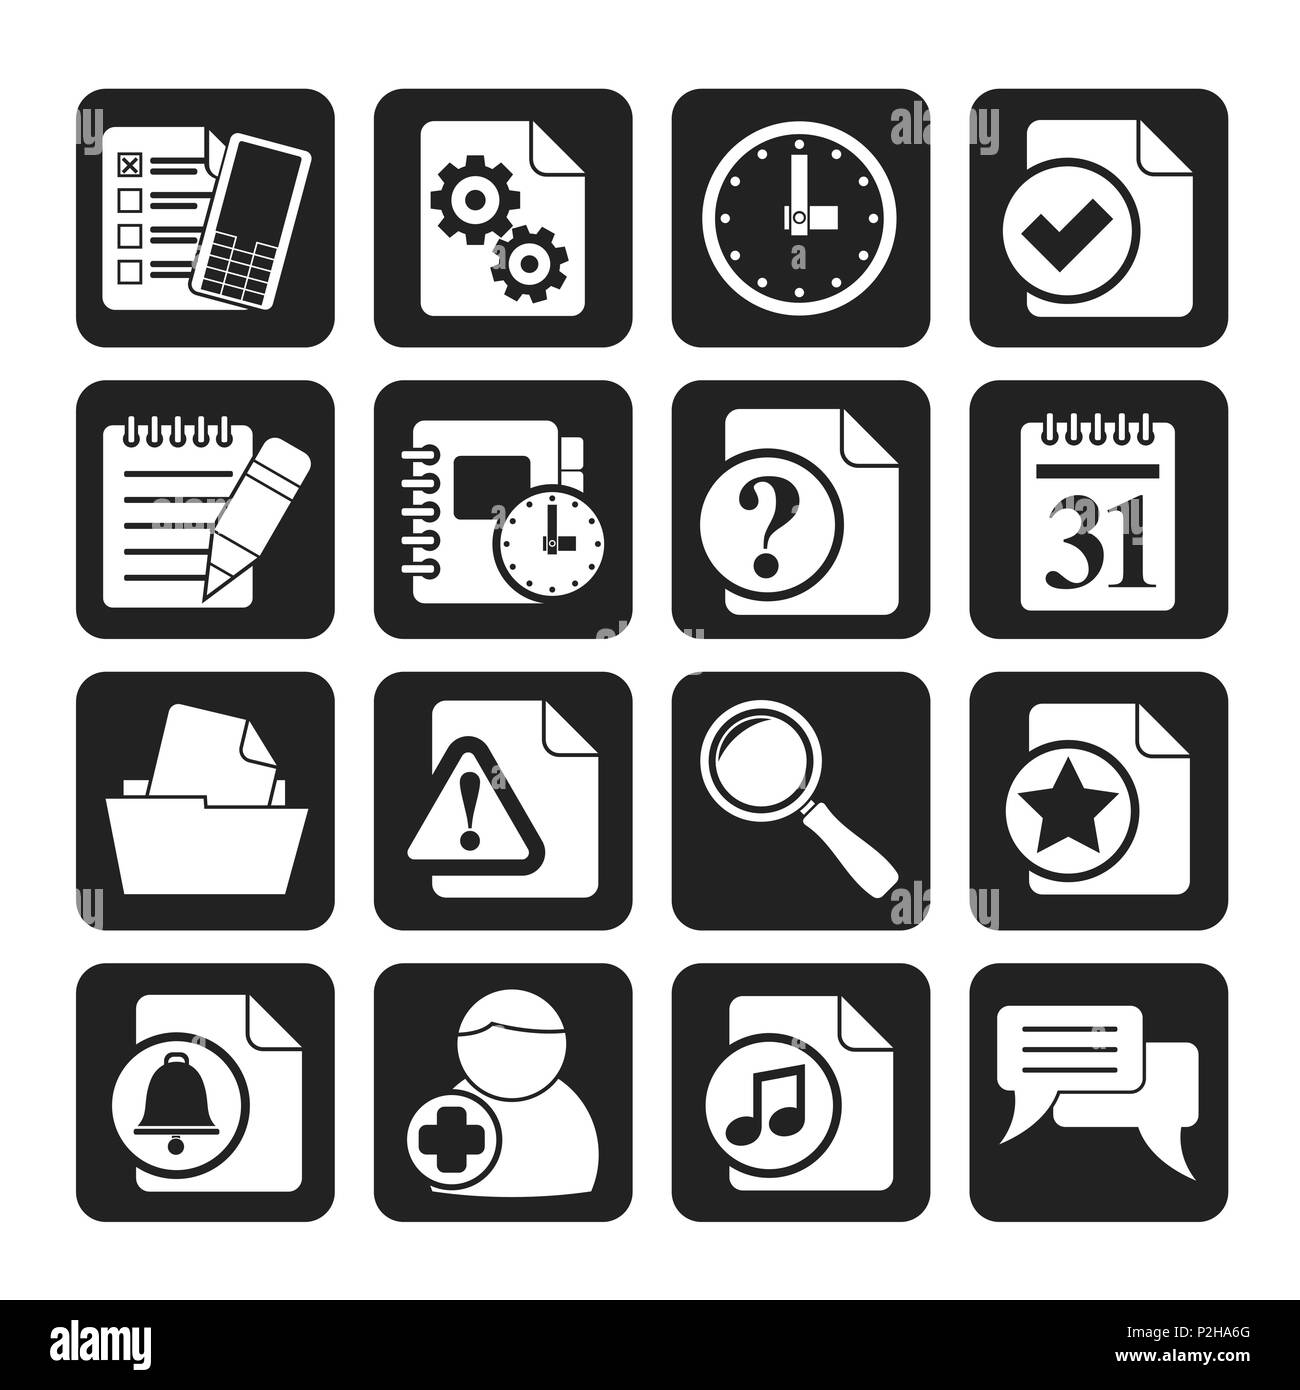 Silhouette Organizer, communication and connection icons - vector icon set - Stock Vector